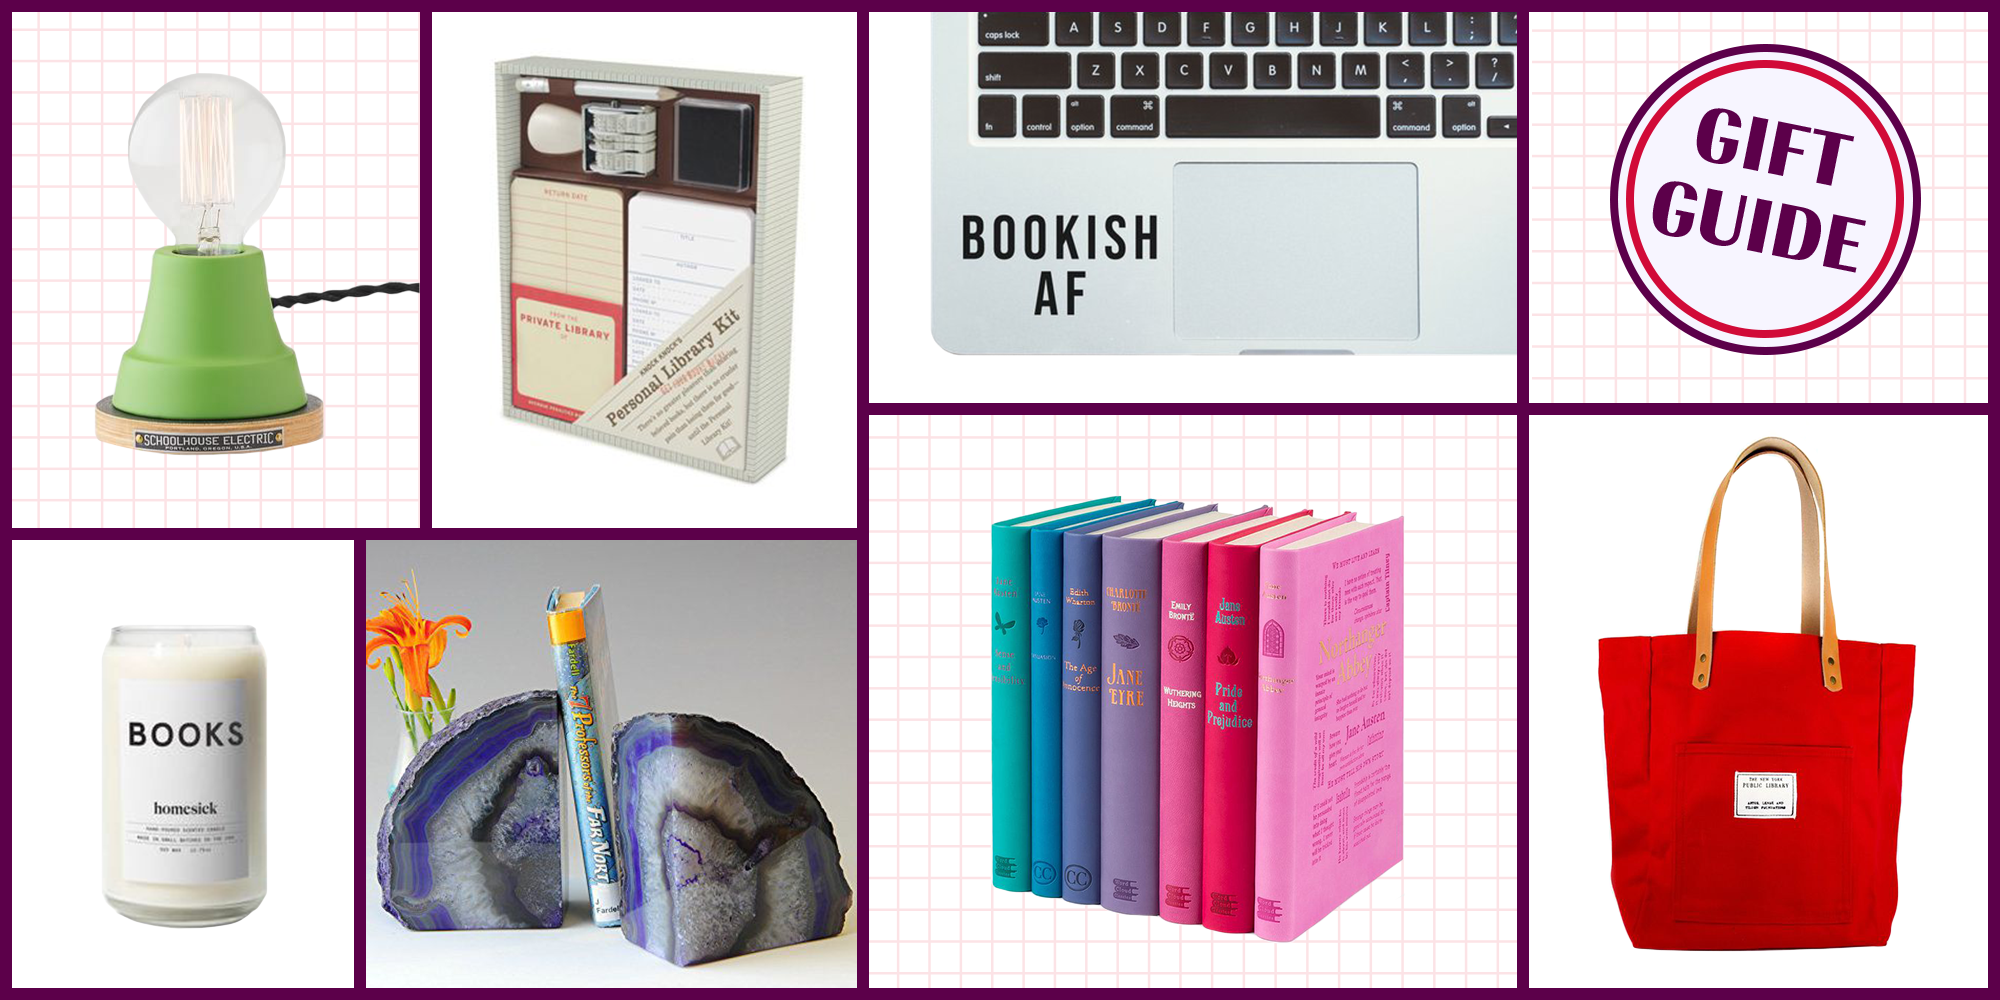 17 Gifts for Book Lovers That Are Truly Chic